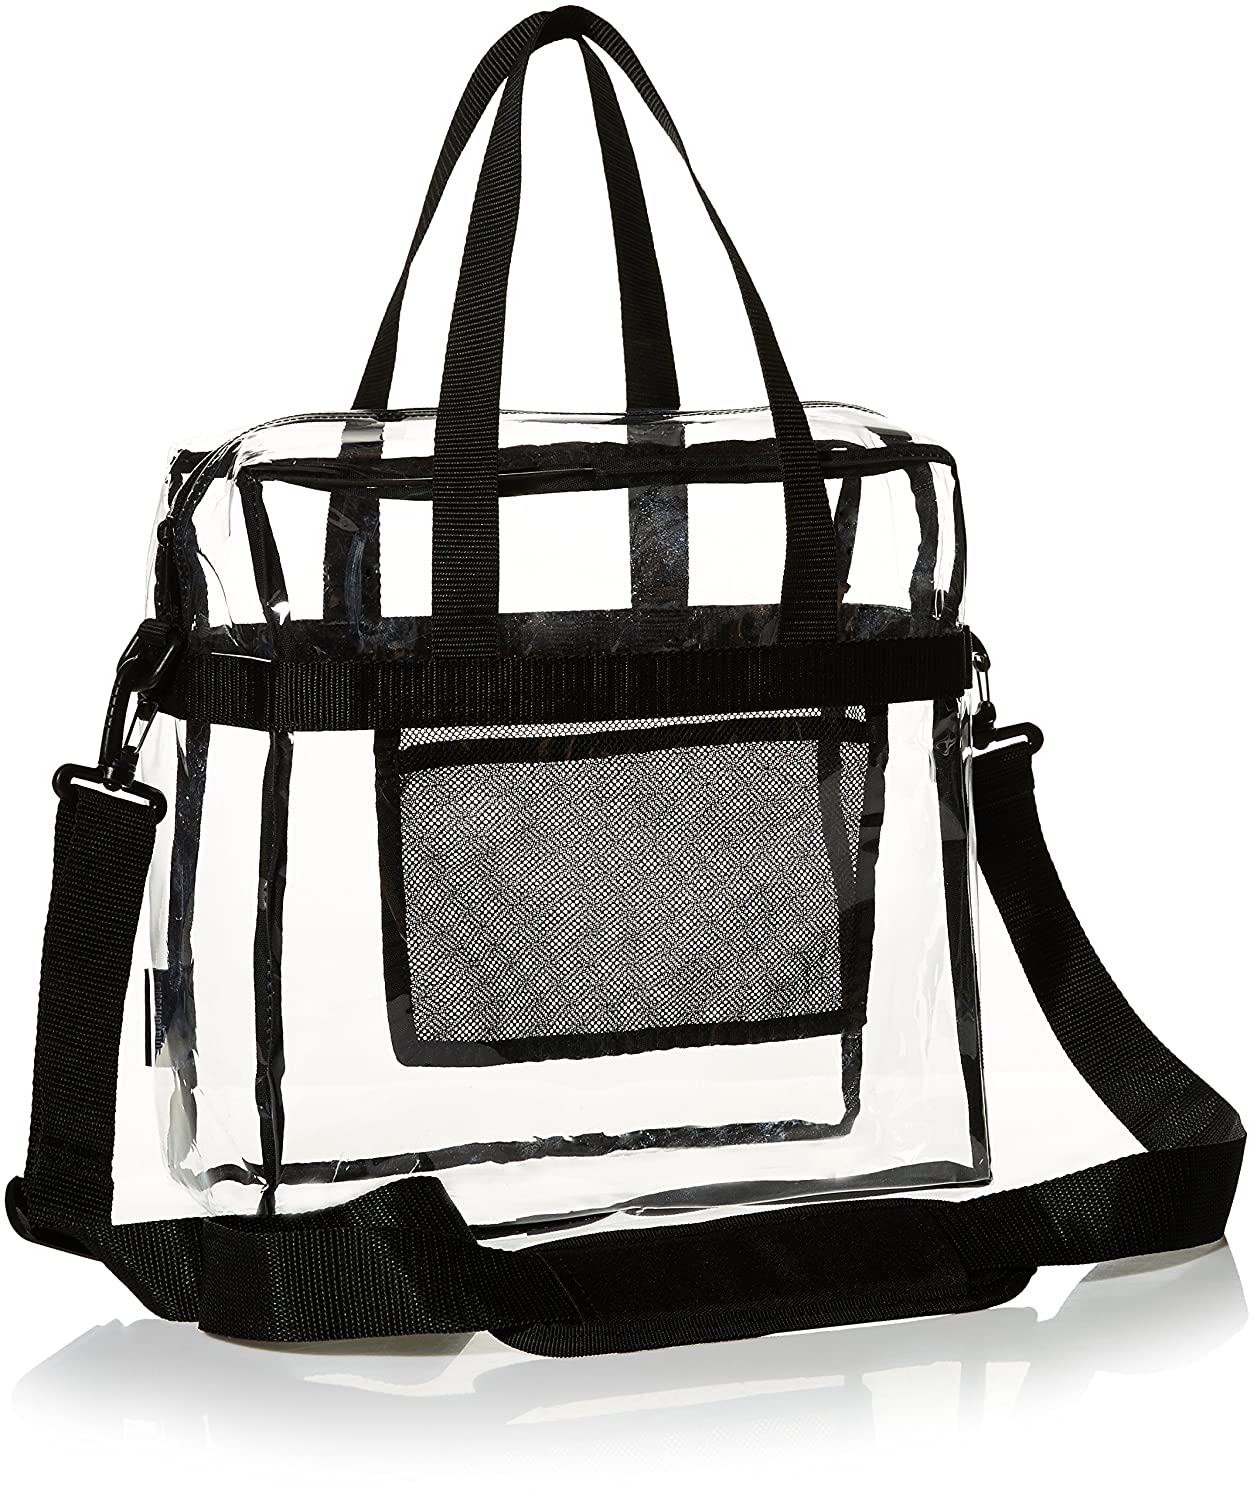 Amazon.com: AmazonBasics Bolsas transparentes para eventos ...